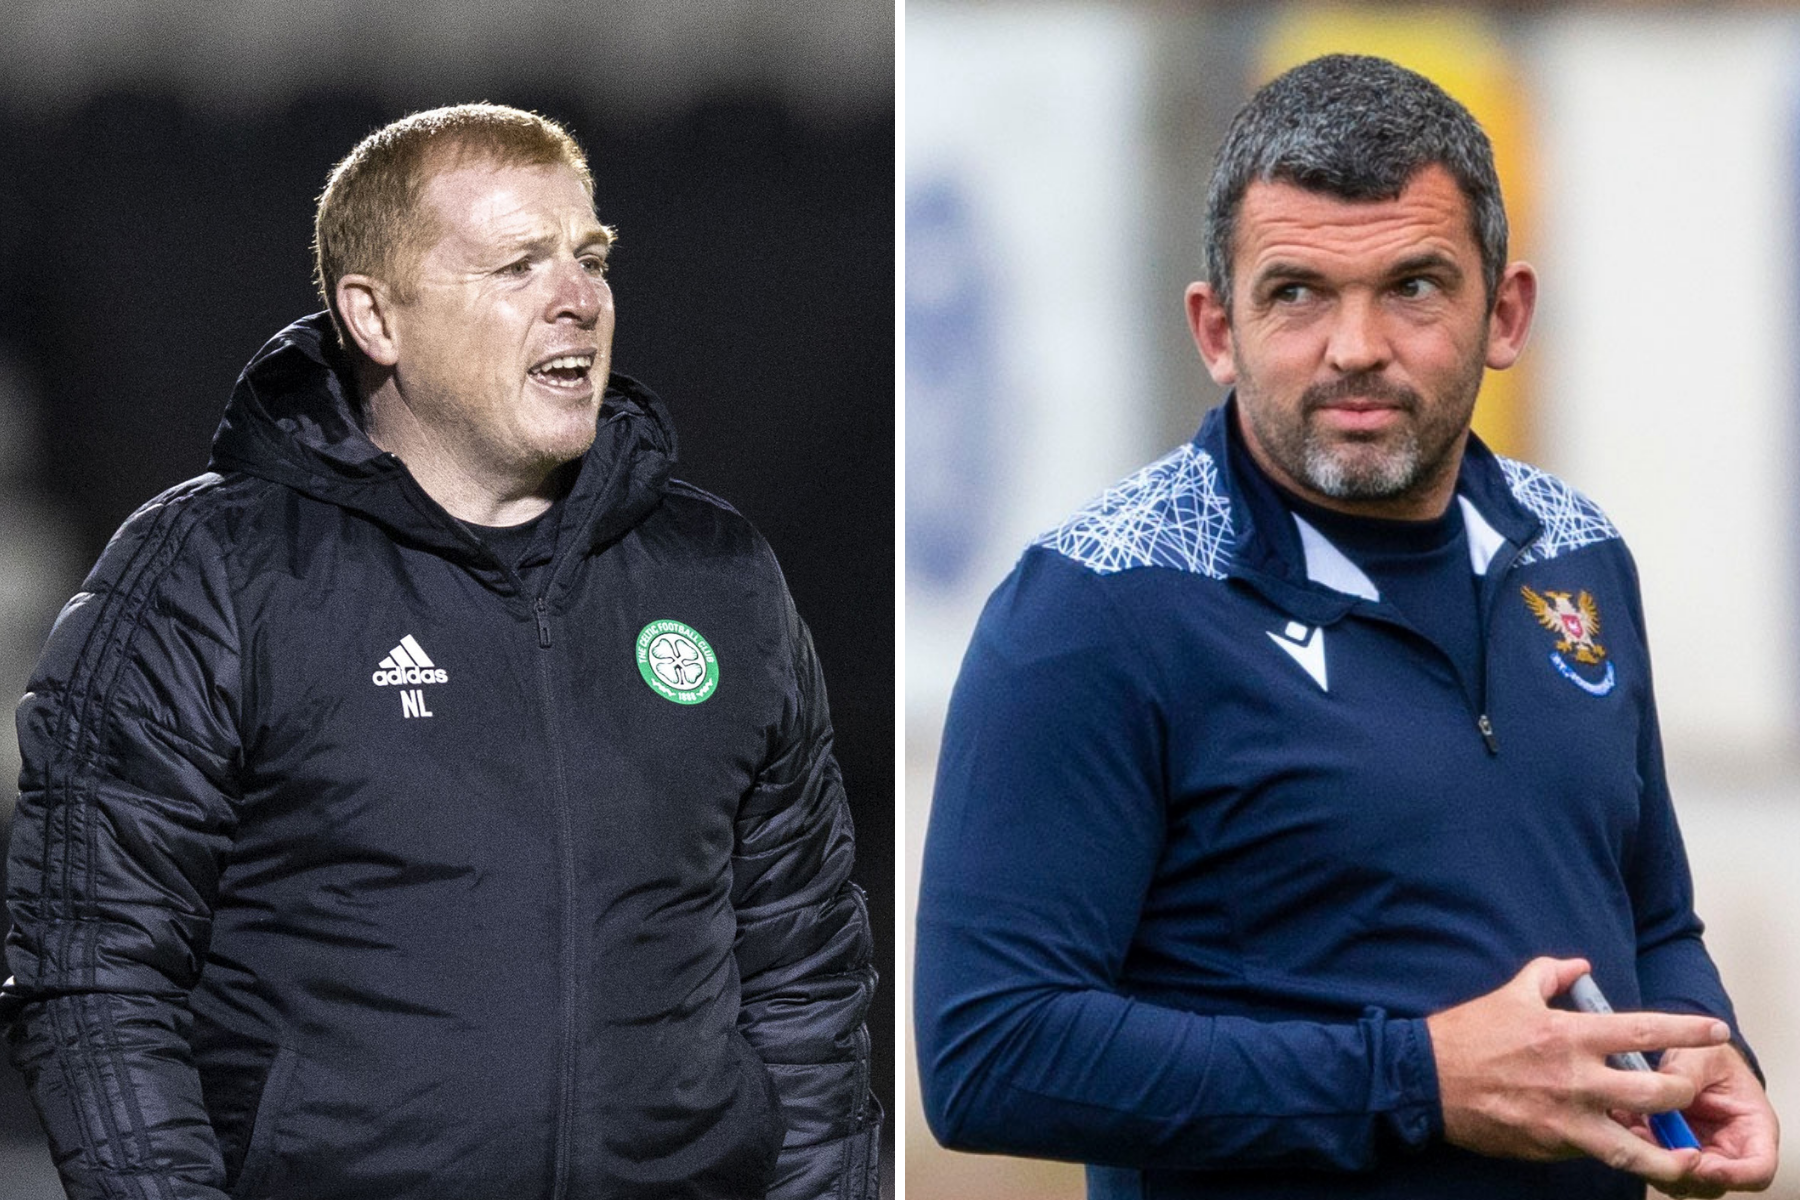 St Johnstone manager Callum Davidson responds to Celtic boss Neil Lennon's dressing room claim